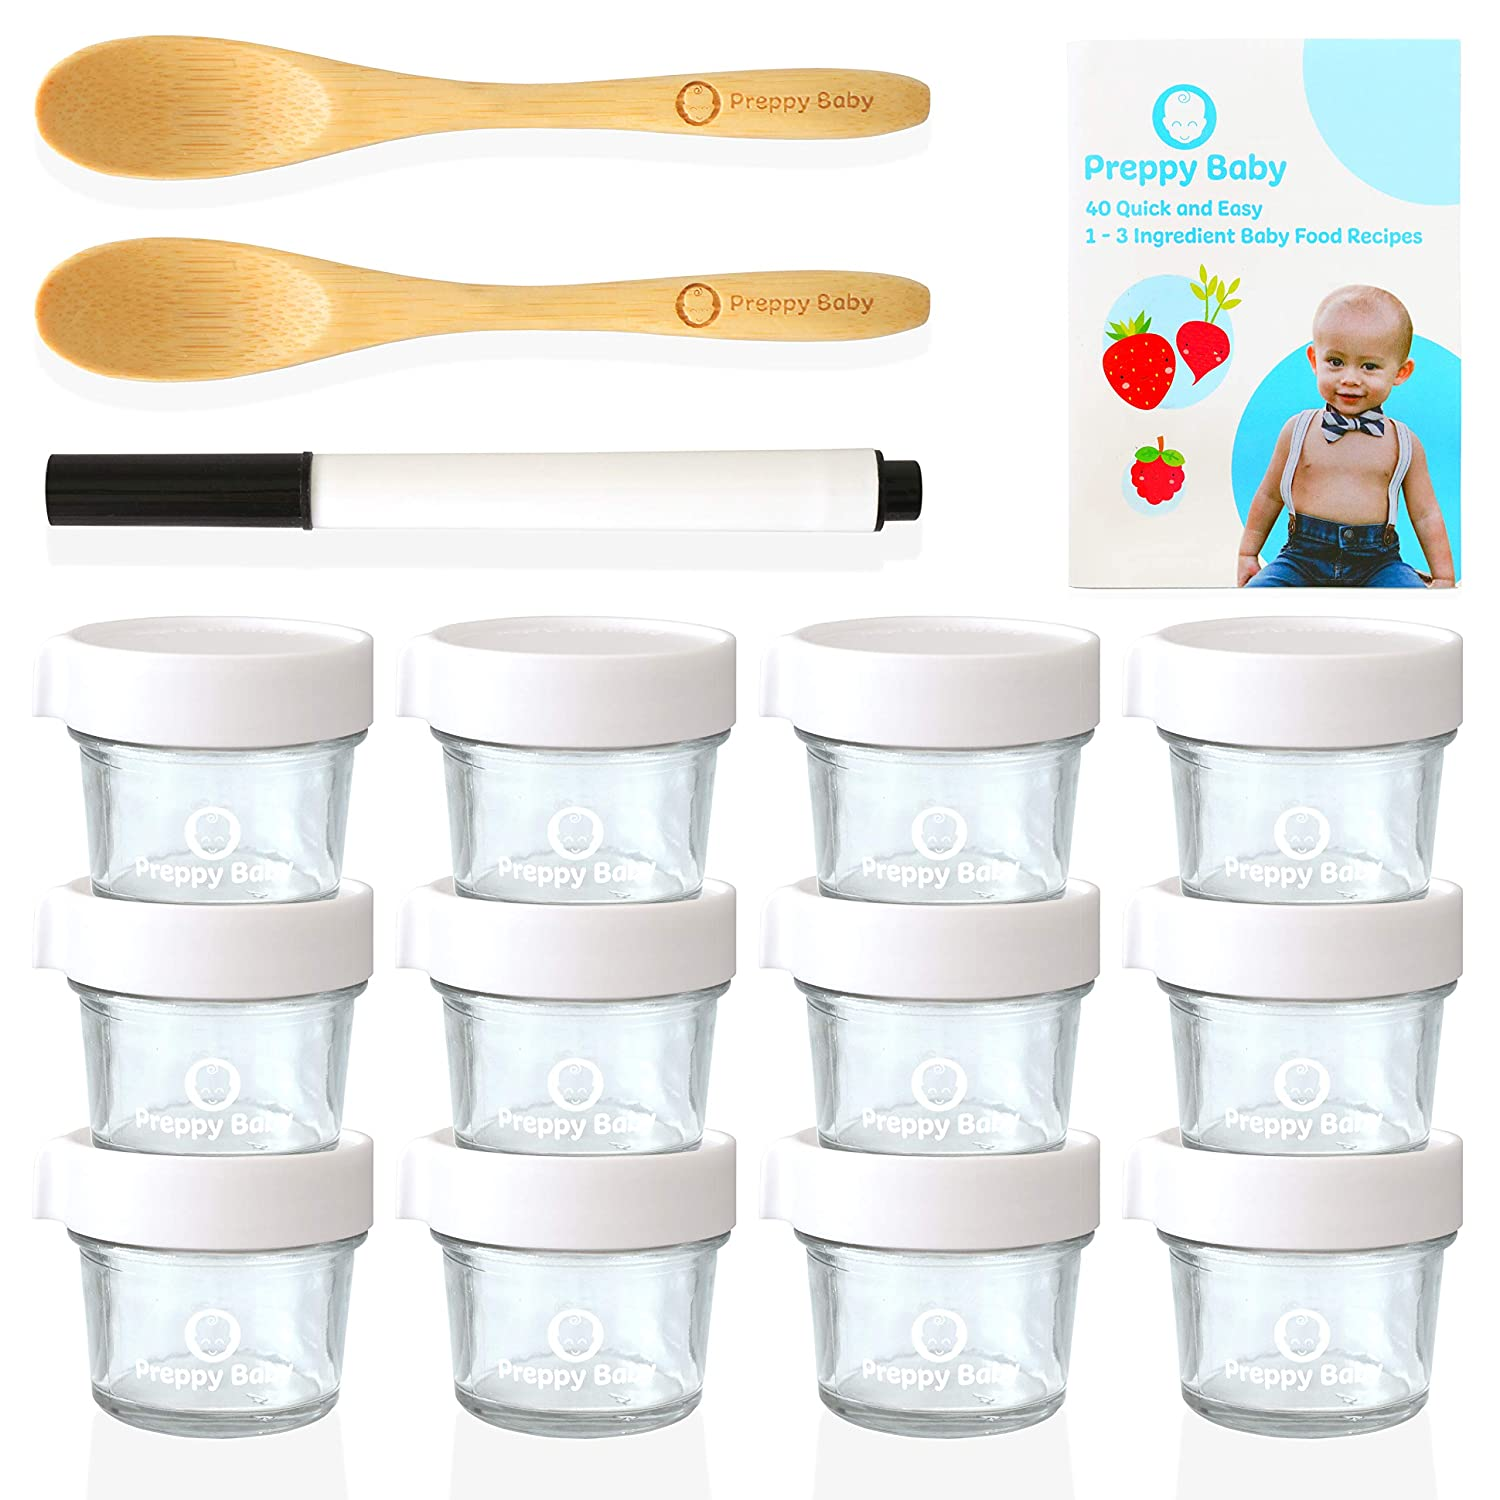 PreppyBaby 4 oz Glass Baby Food Storage Containers with Lids - Pack of 12 Reusable Dishwasher & Microwave Safe Food Jars w/ 2 Bamboo Infant Spoons, Recipe Booklet & Non-toxic Easy Erase Marker (White)